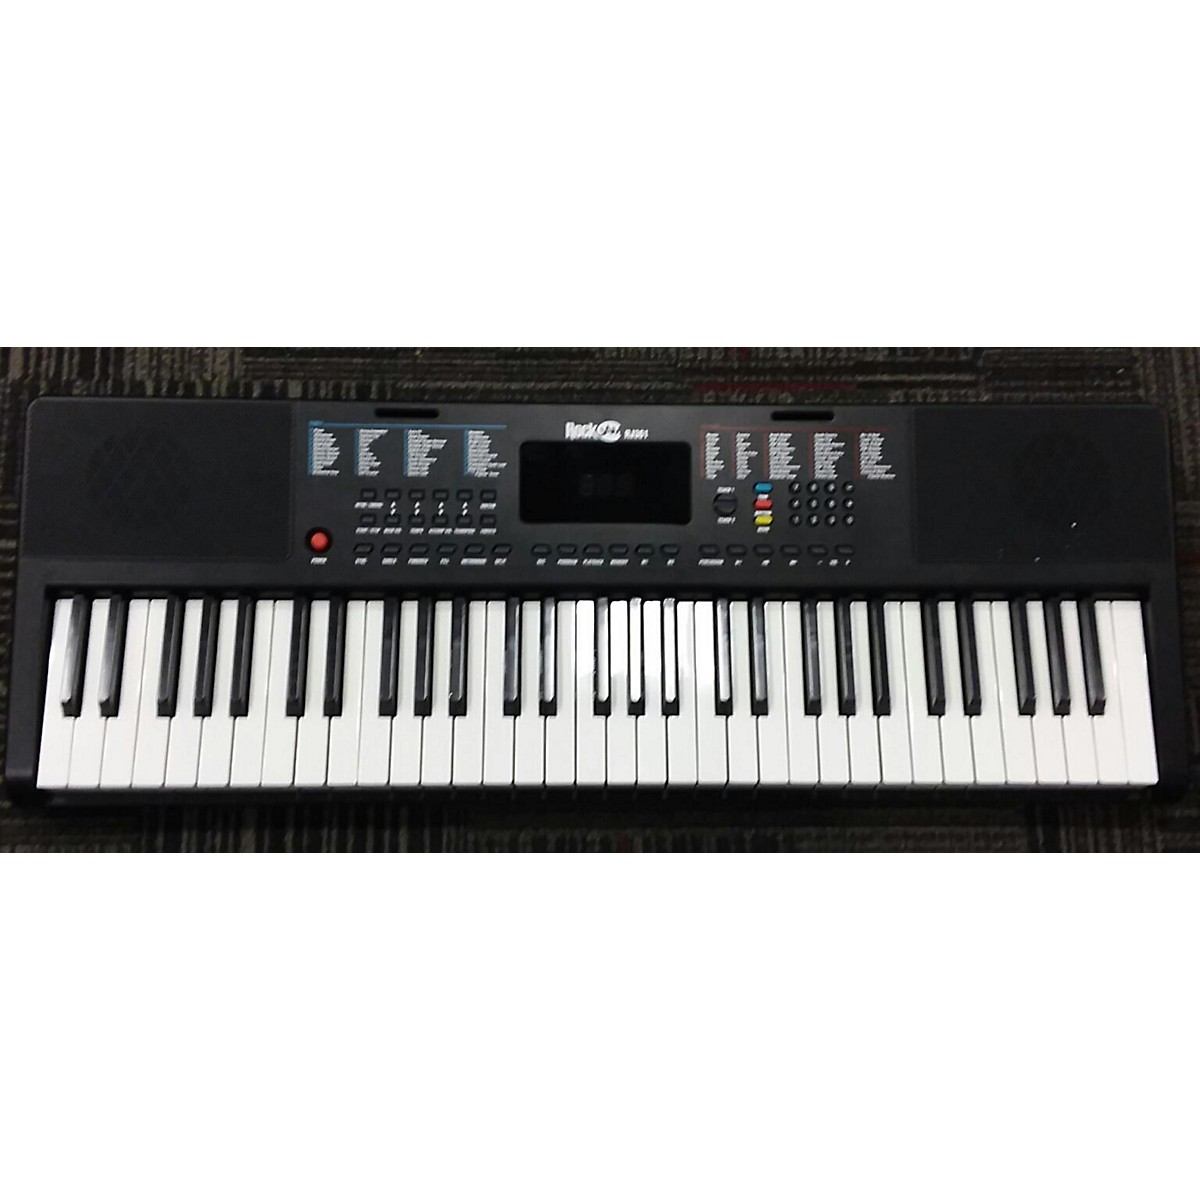 In Store Used Used ROCKJAM RJ361 Portable Keyboard